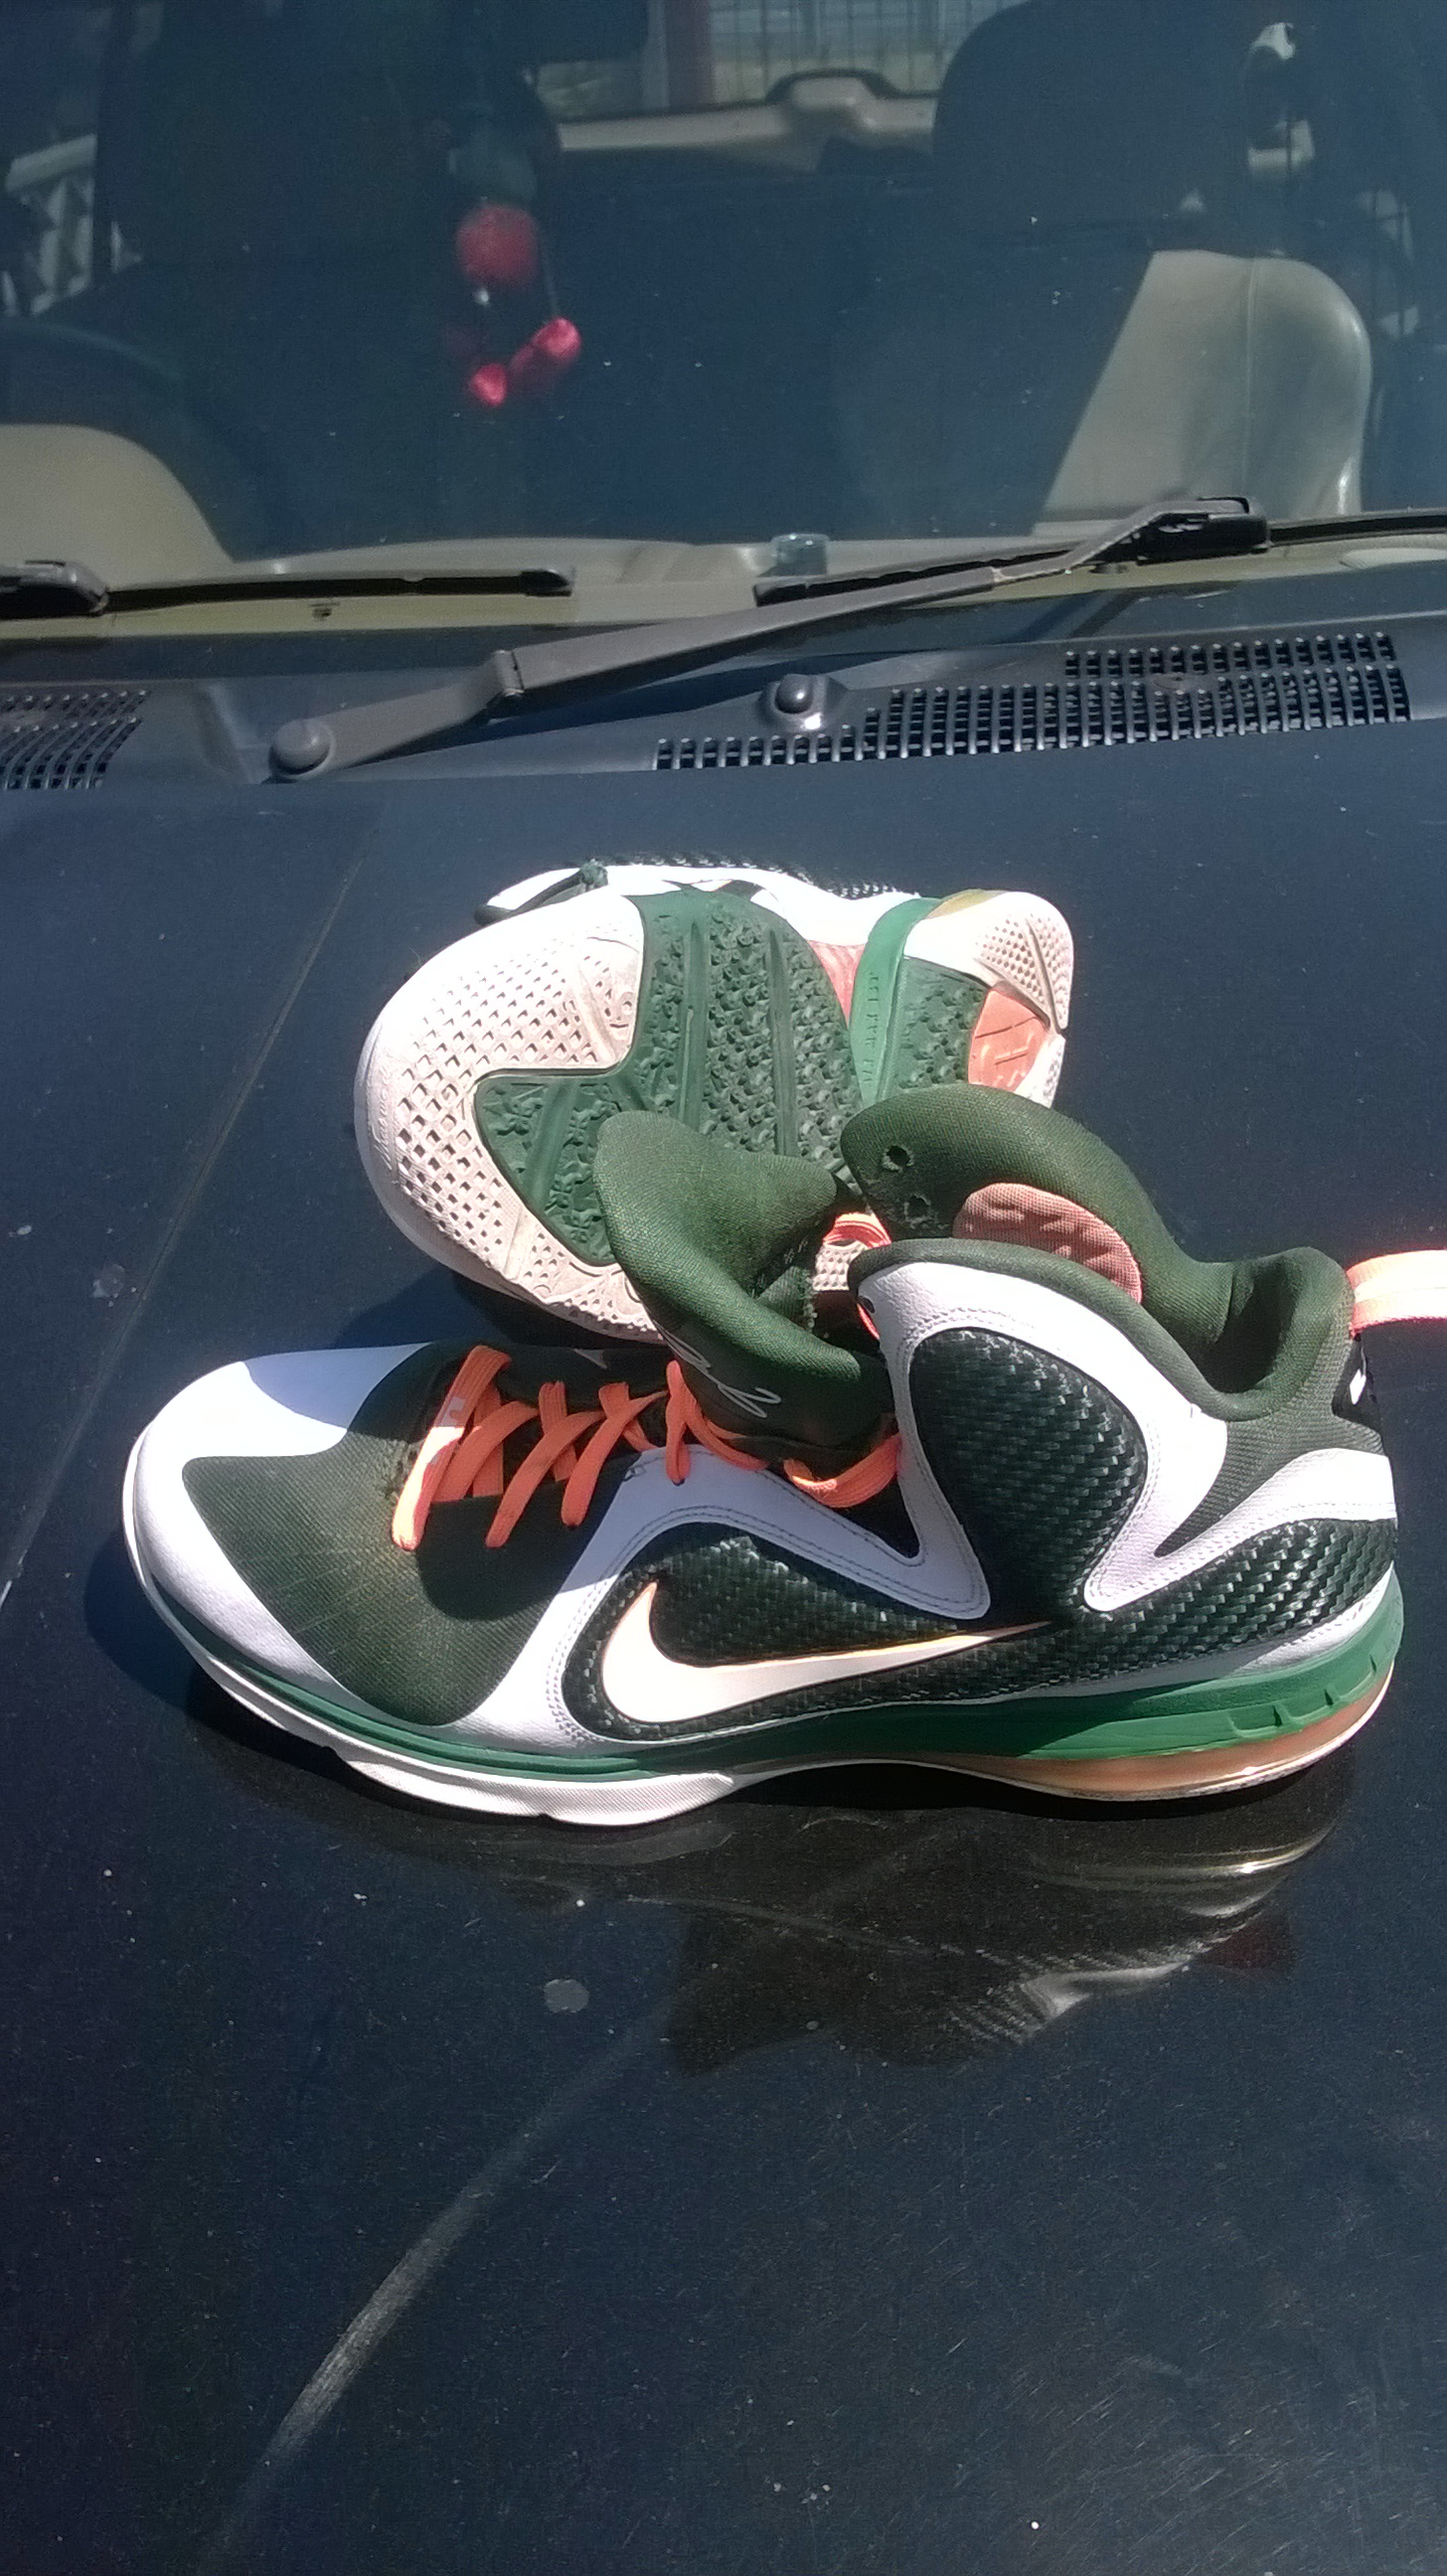 Lebron James Nike Nine Sneakers For Sale